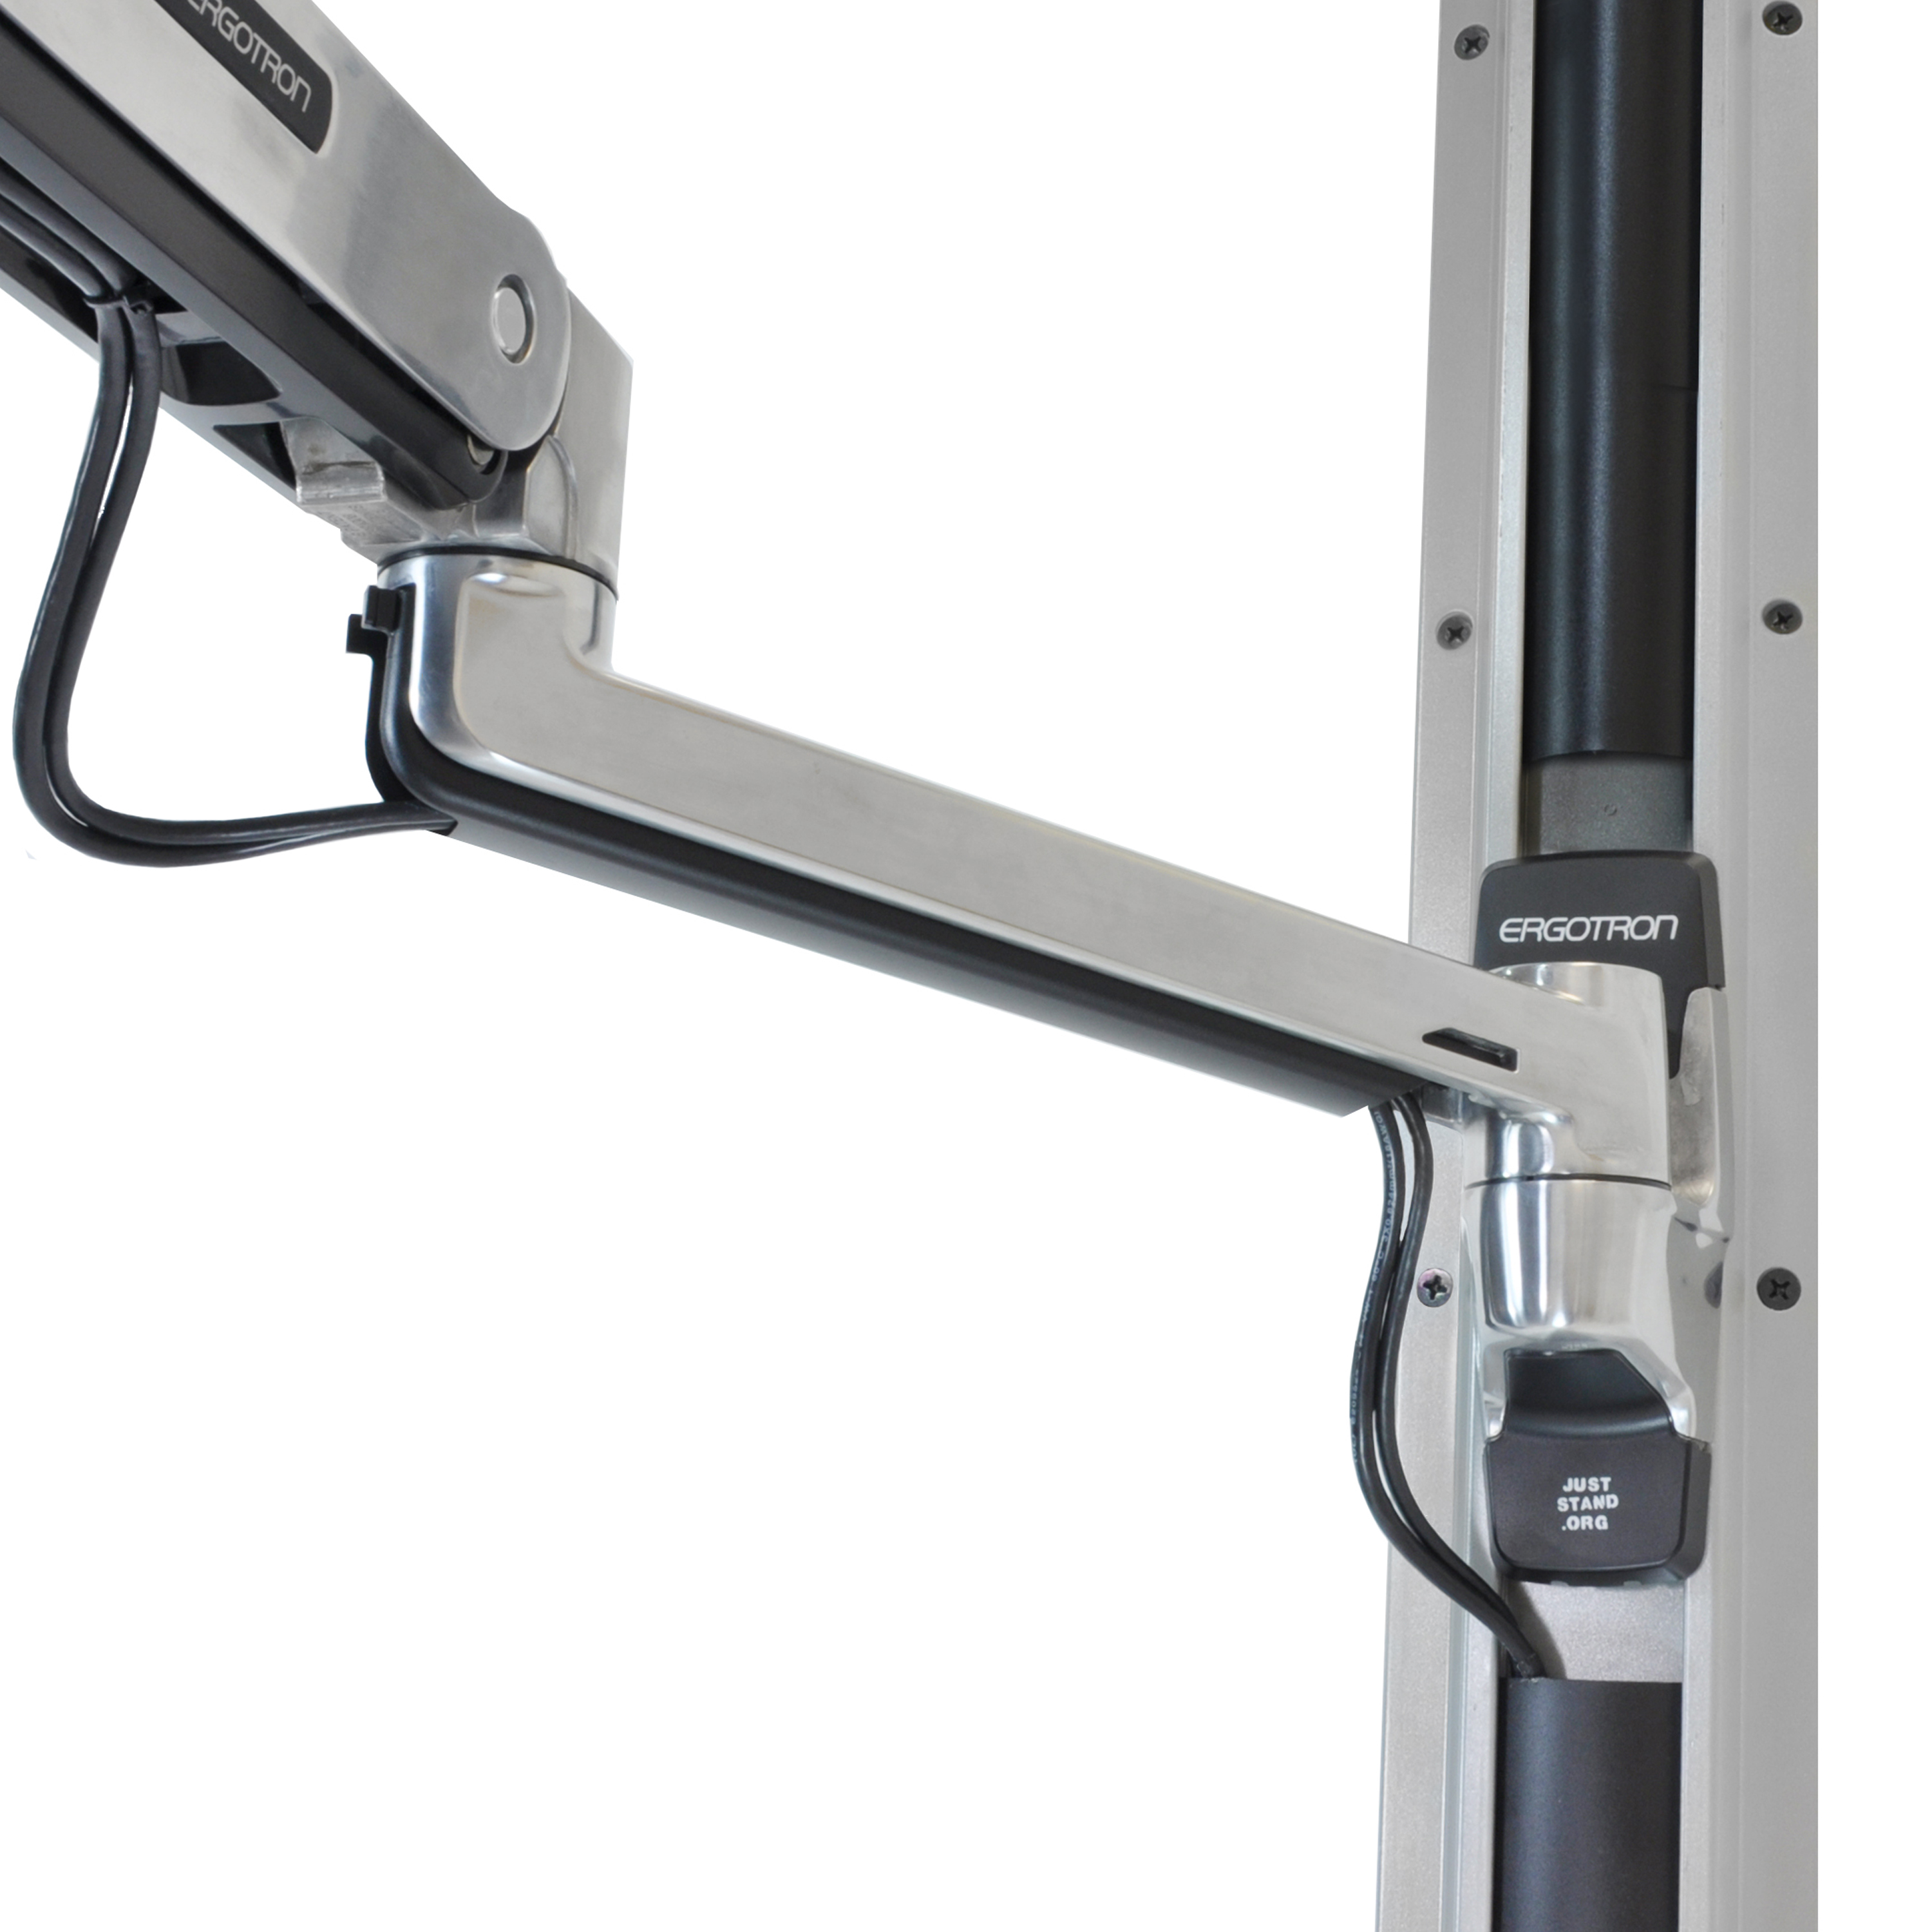 Wall Mounted Laptop Support Arm Arm Designs